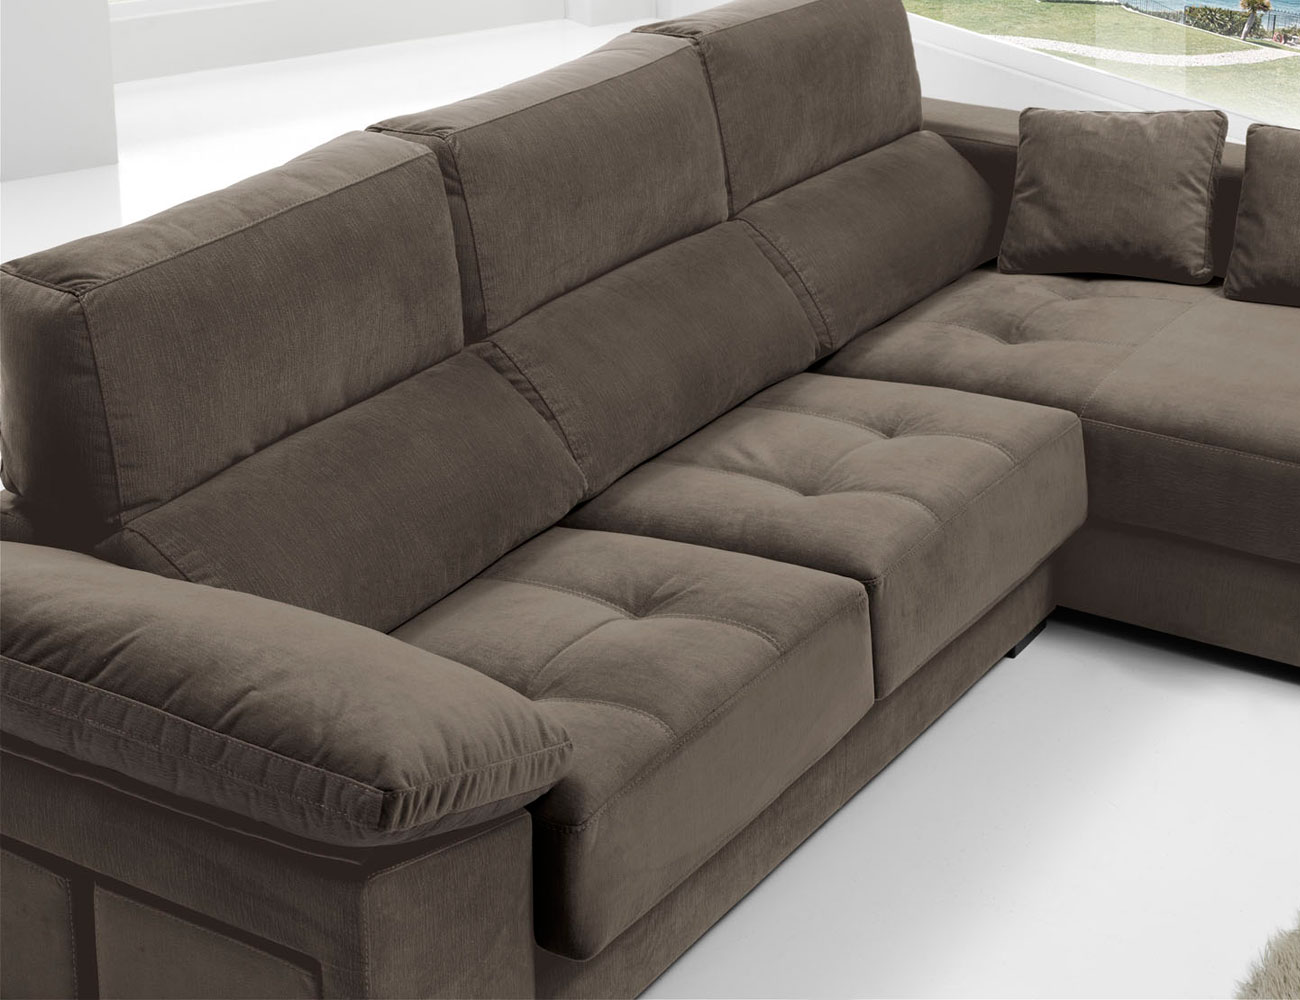 Sofa chaiselongue anti manchas bering pouf 251